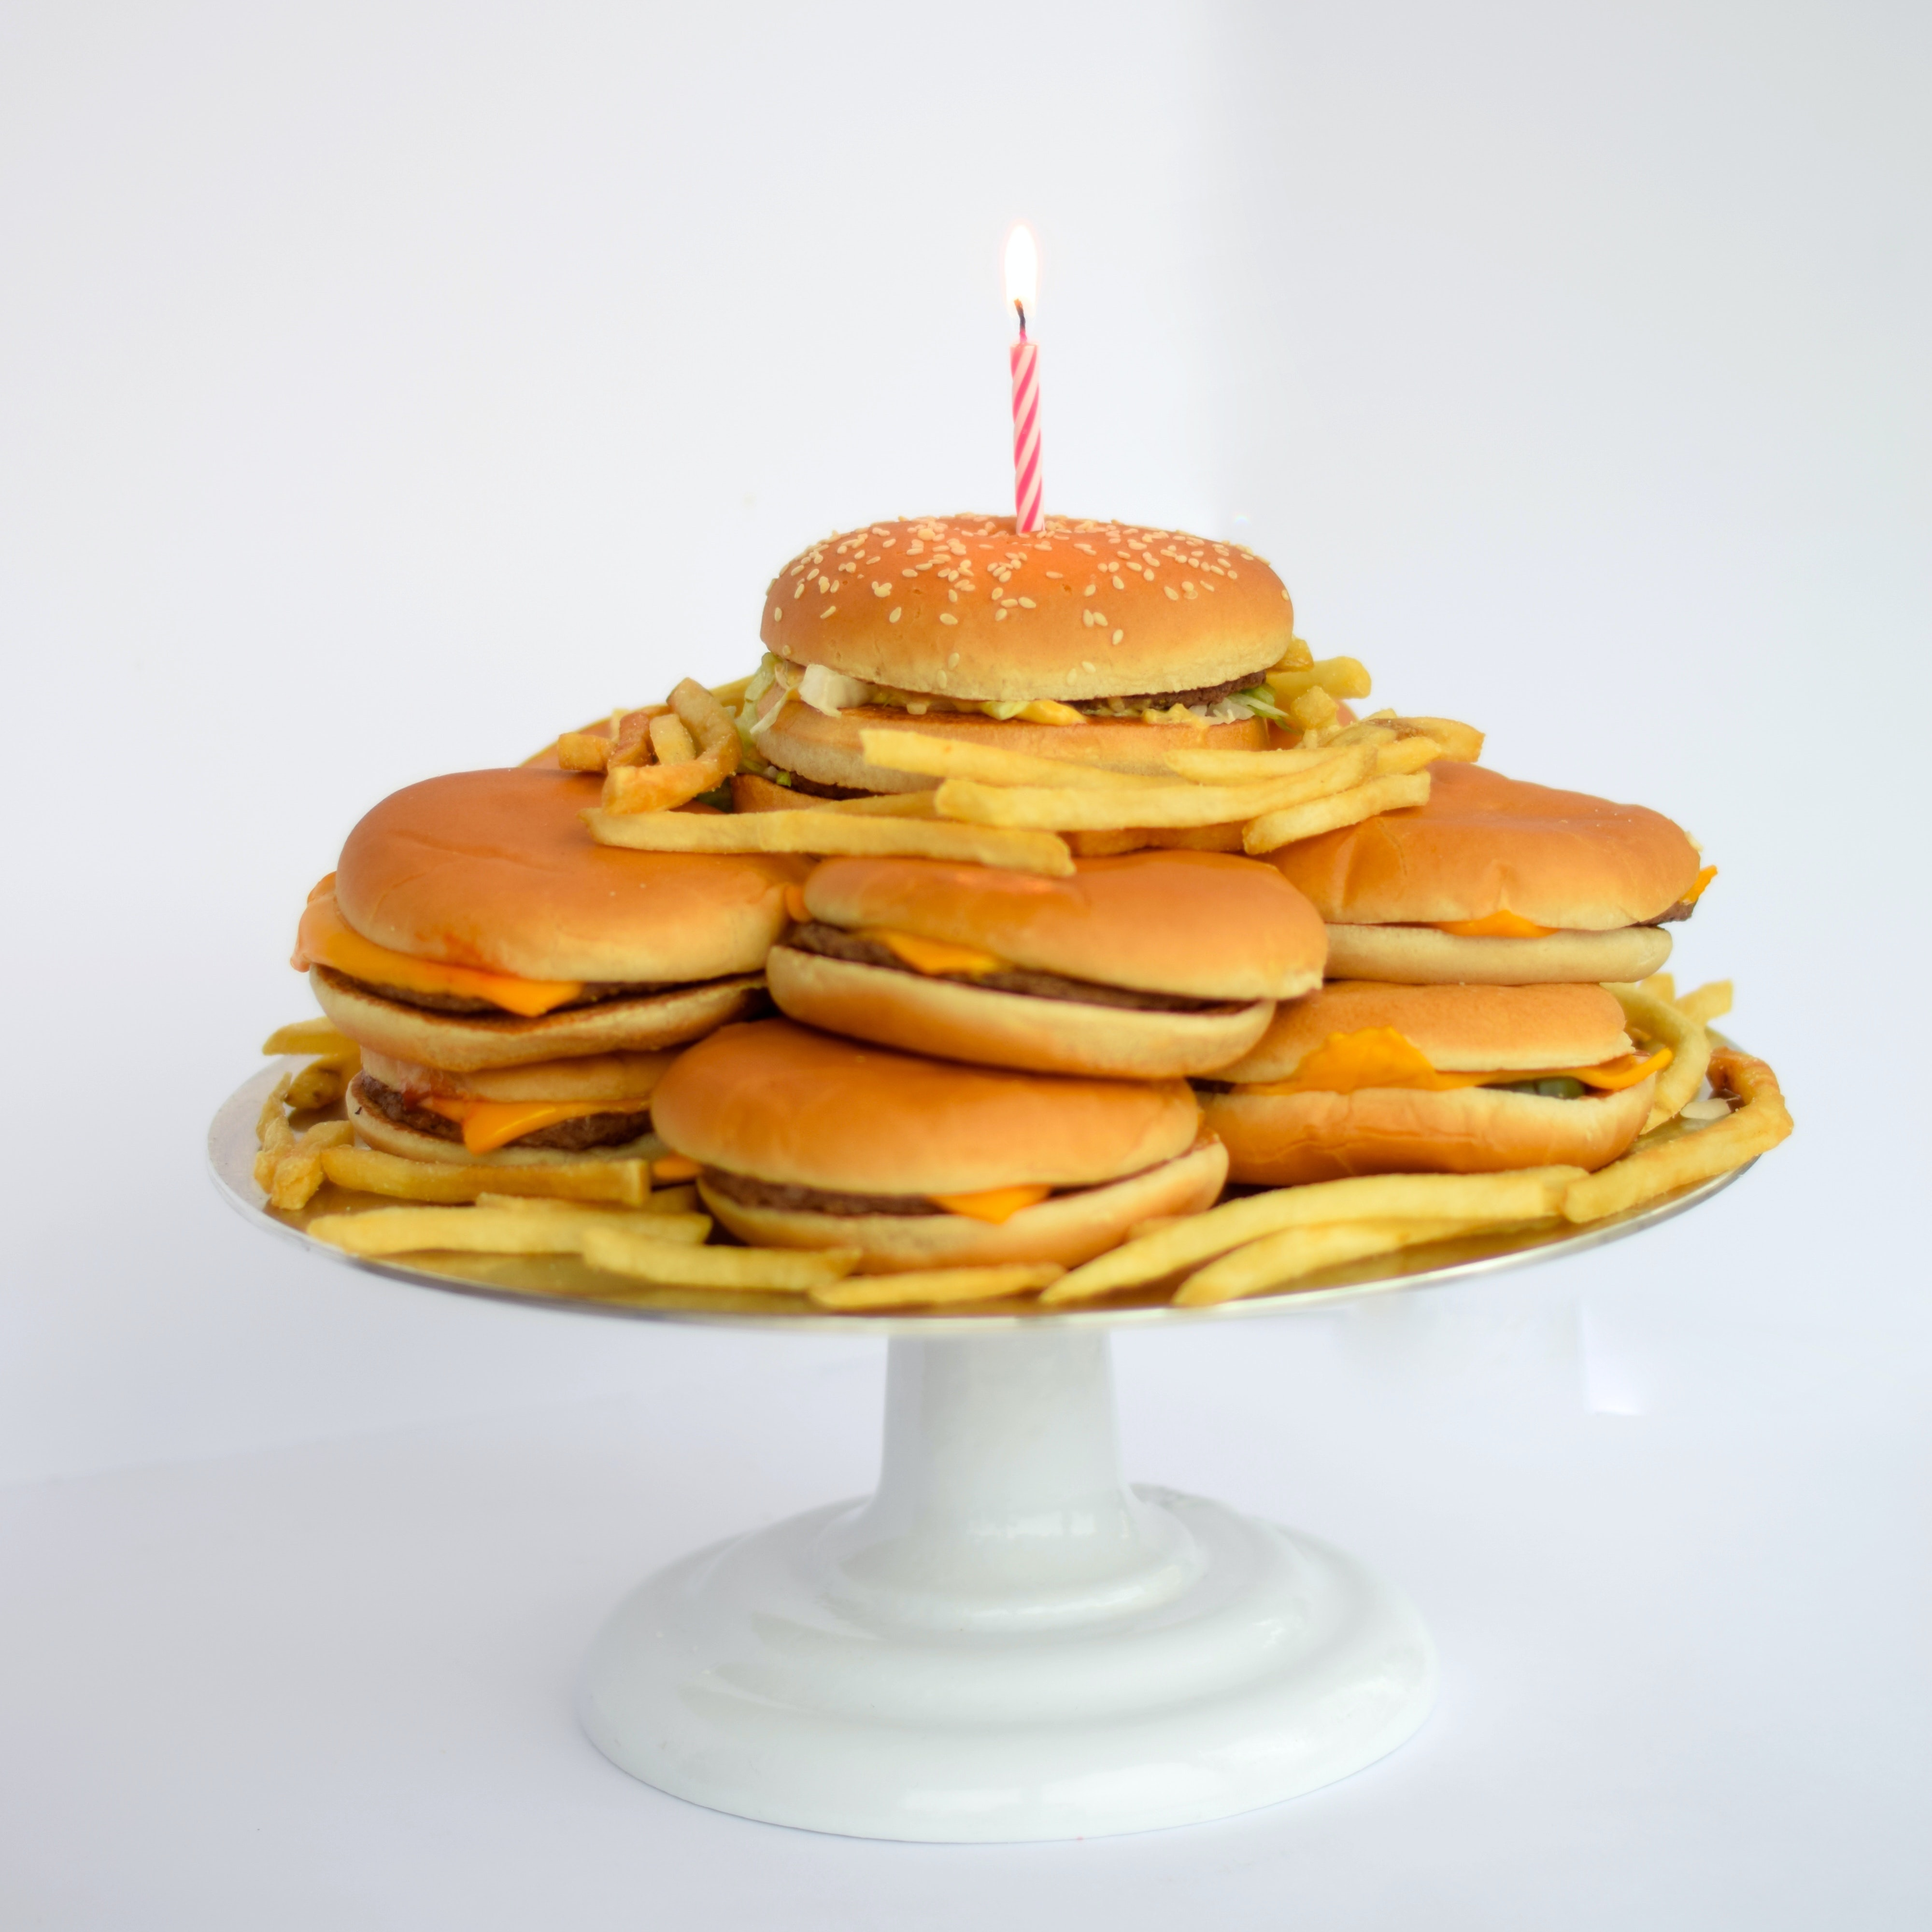 This Cheeseburger Cake Is Exactly What You Need At Your Next Burger